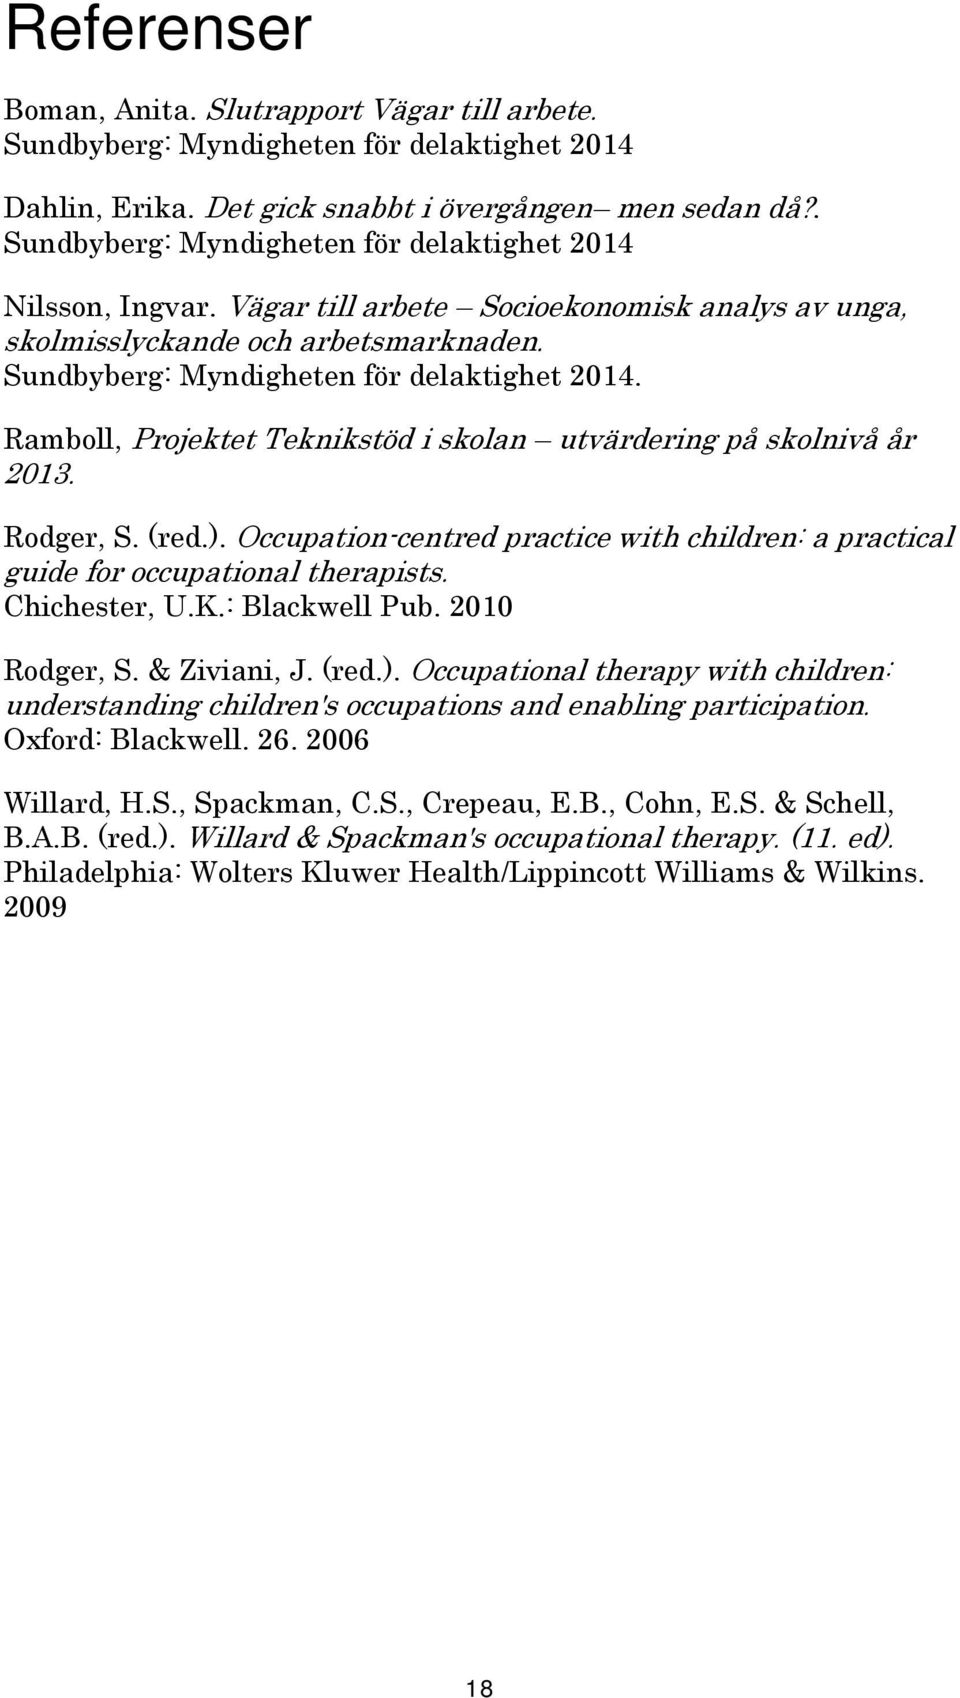 Rodger, S. (red.). Occupation-centred practice with children: a practical guide for occupational therapists. Chichester, U.K.: Blackwell Pub. 2010 Rodger, S. & Ziviani, J. (red.). Occupational therapy with children: understanding children's occupations and enabling participation.